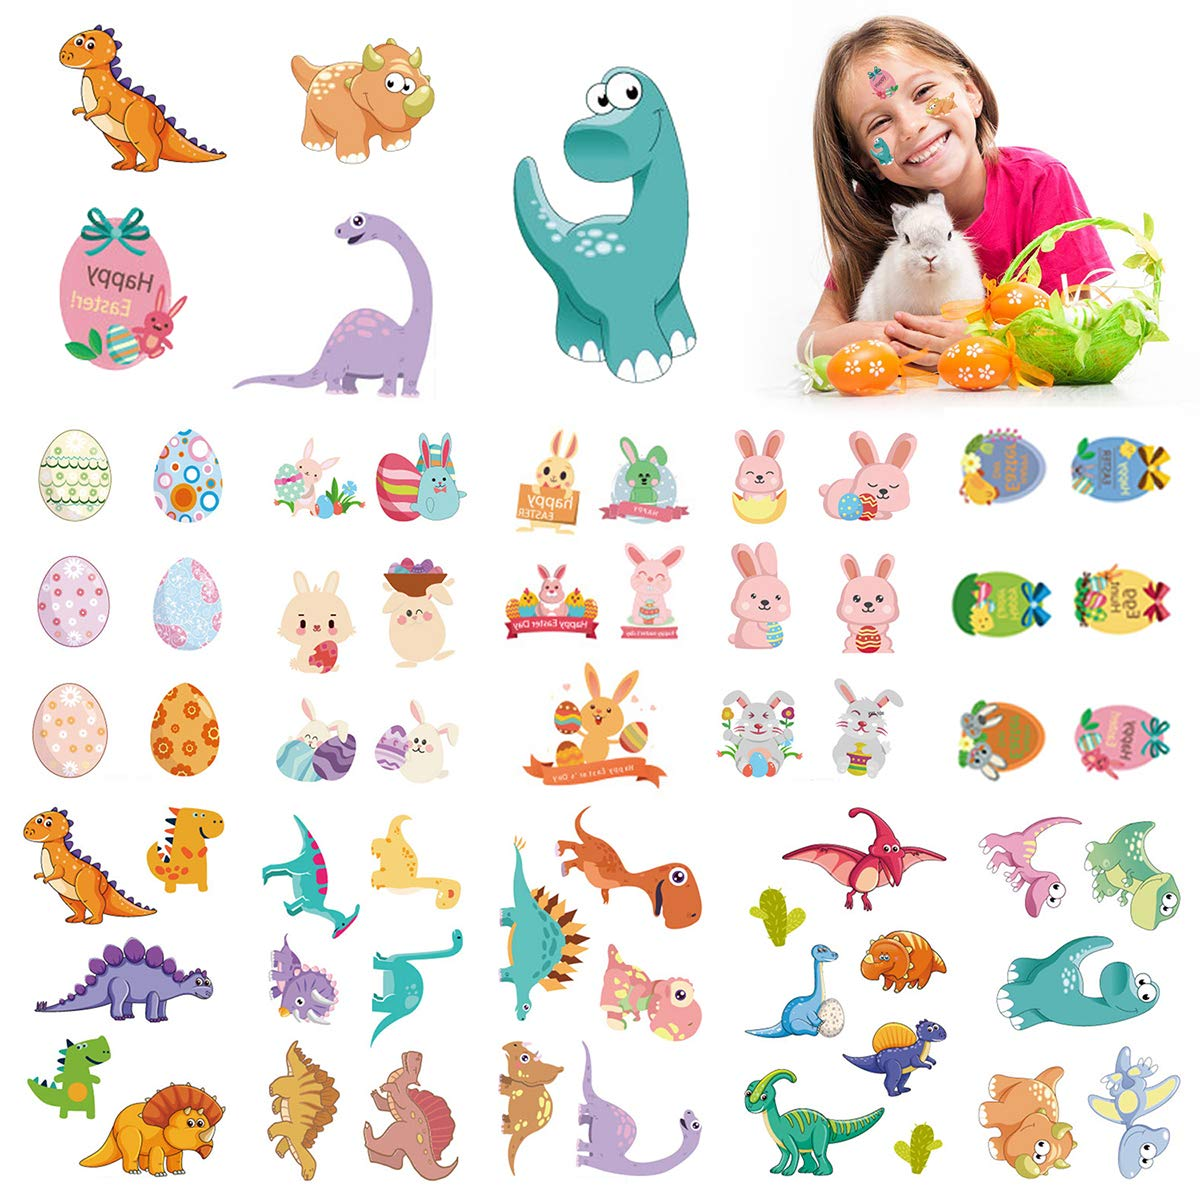 15 Sheets New Style Dinosaur Easter Tattoos Dinosaur Bunny Chicken Tattoos For Easter Egg Hunt, Bunny Egg Dinosaur Temporary Party Favors Gifts,Easter Party Favors For Kids